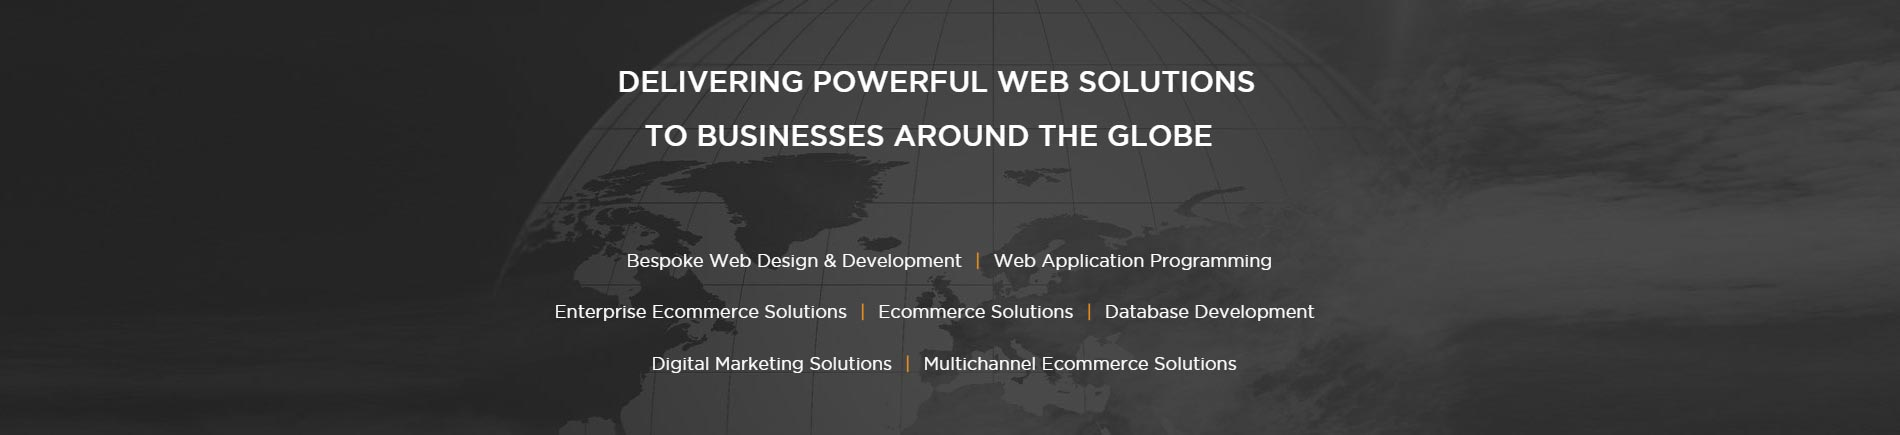 Complete Web Solution Services - KOL Limited